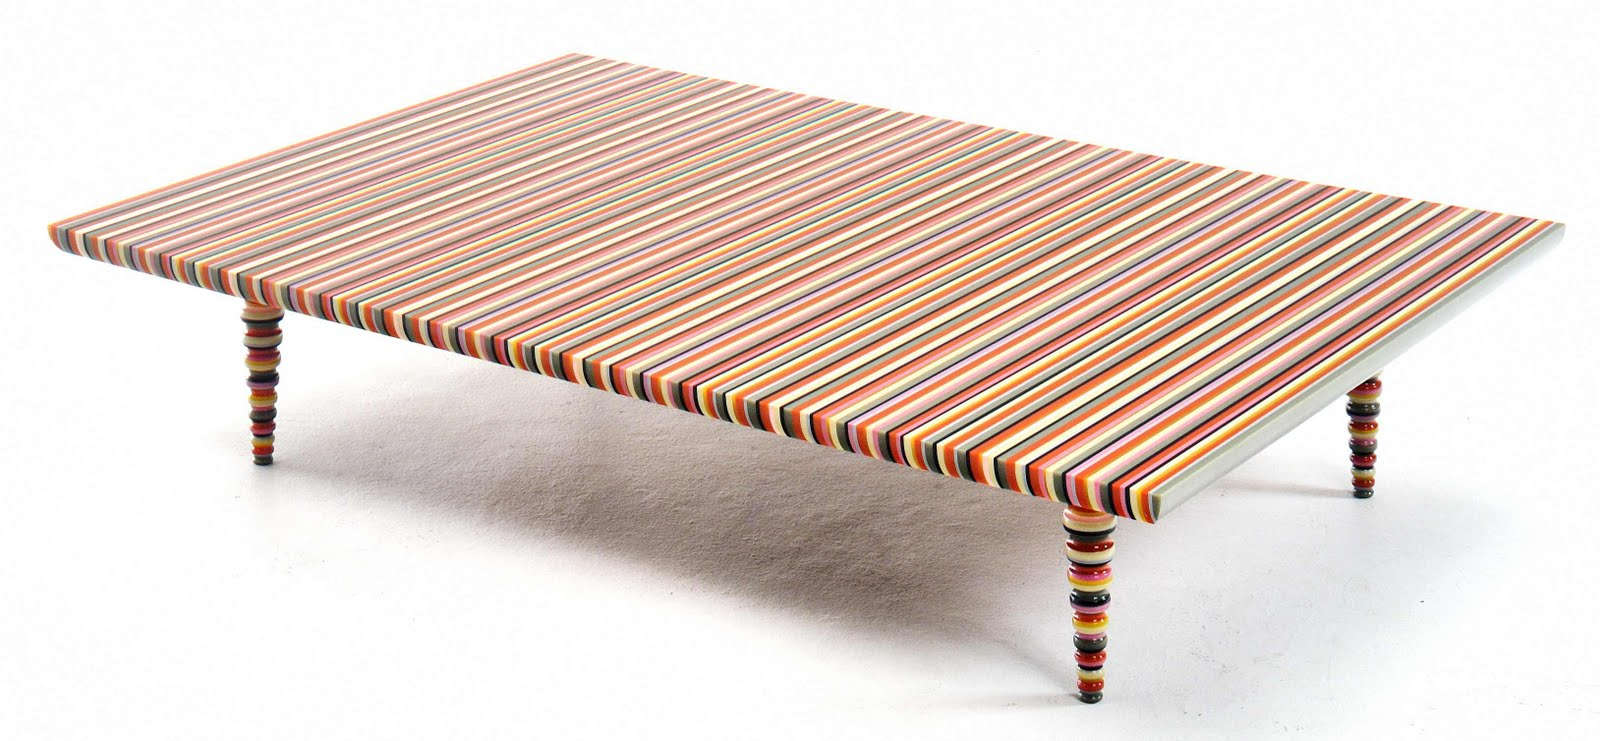 If It's Hip, It's Here (Archives): Allê Design's Whimsical ...